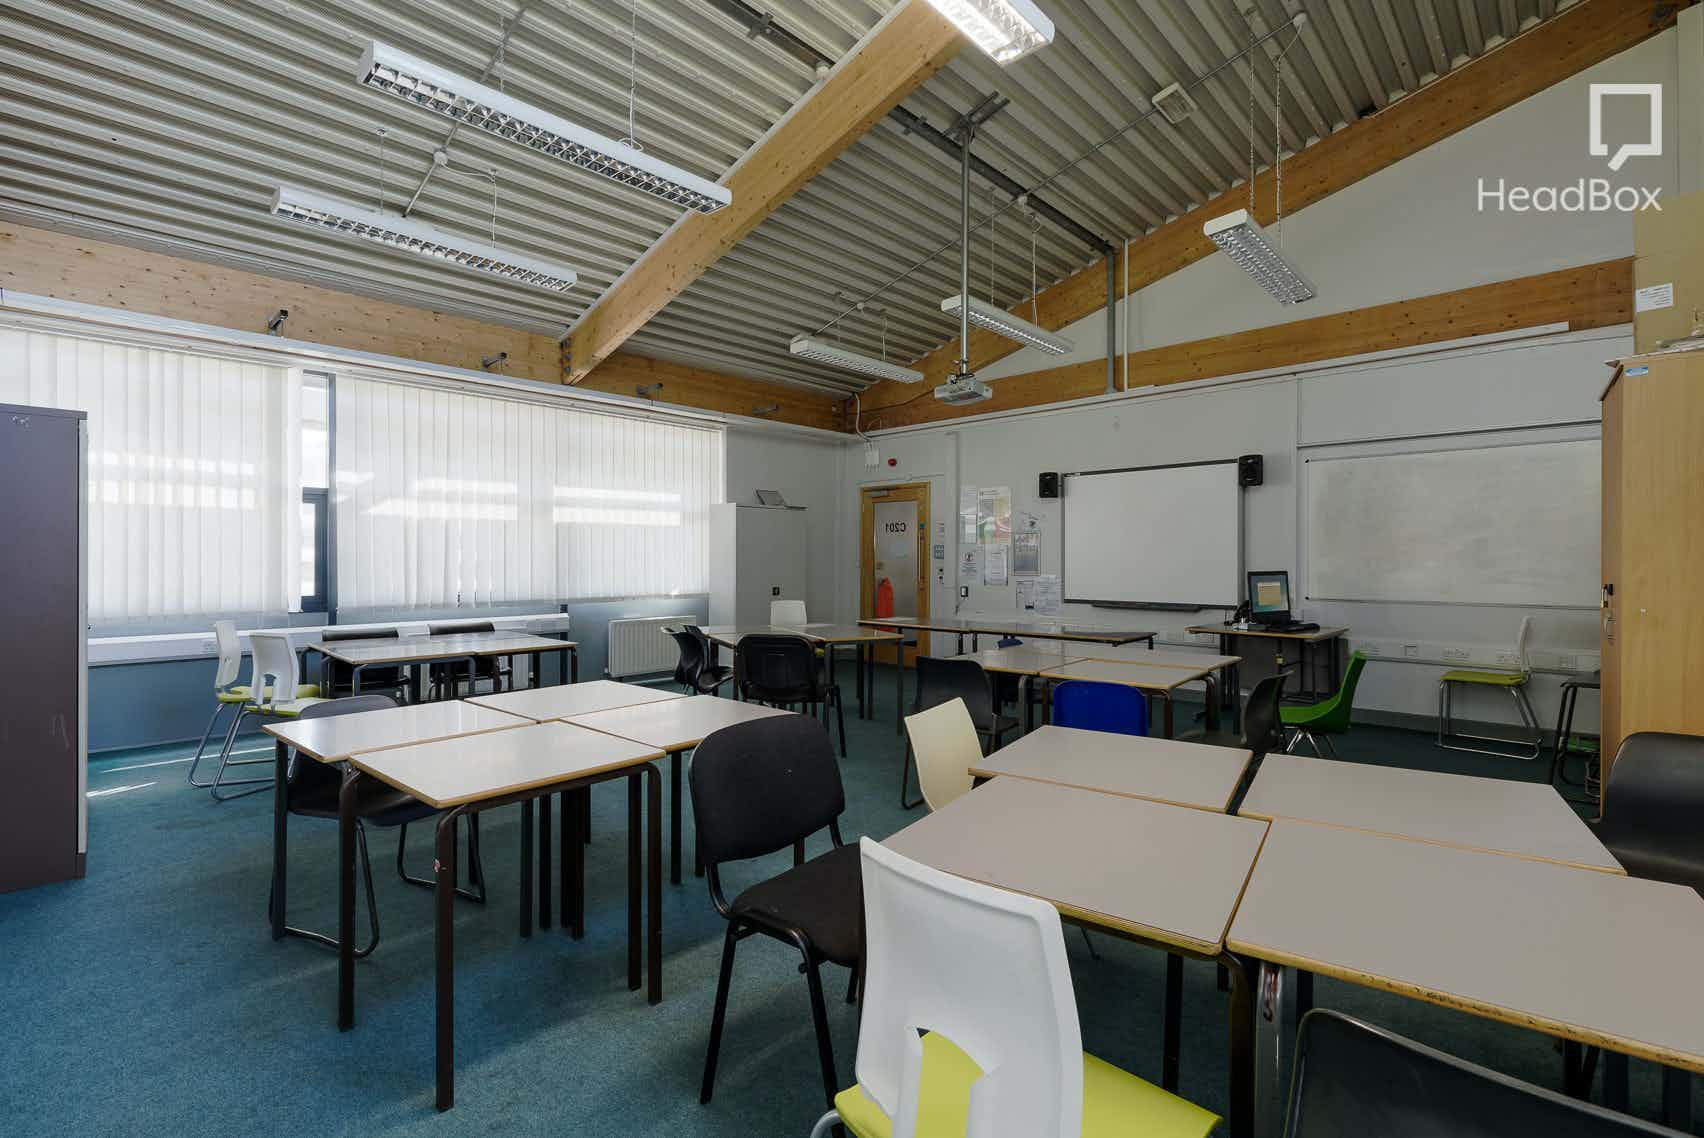 Afternoon, Meeting Room 2, Open Kitchen